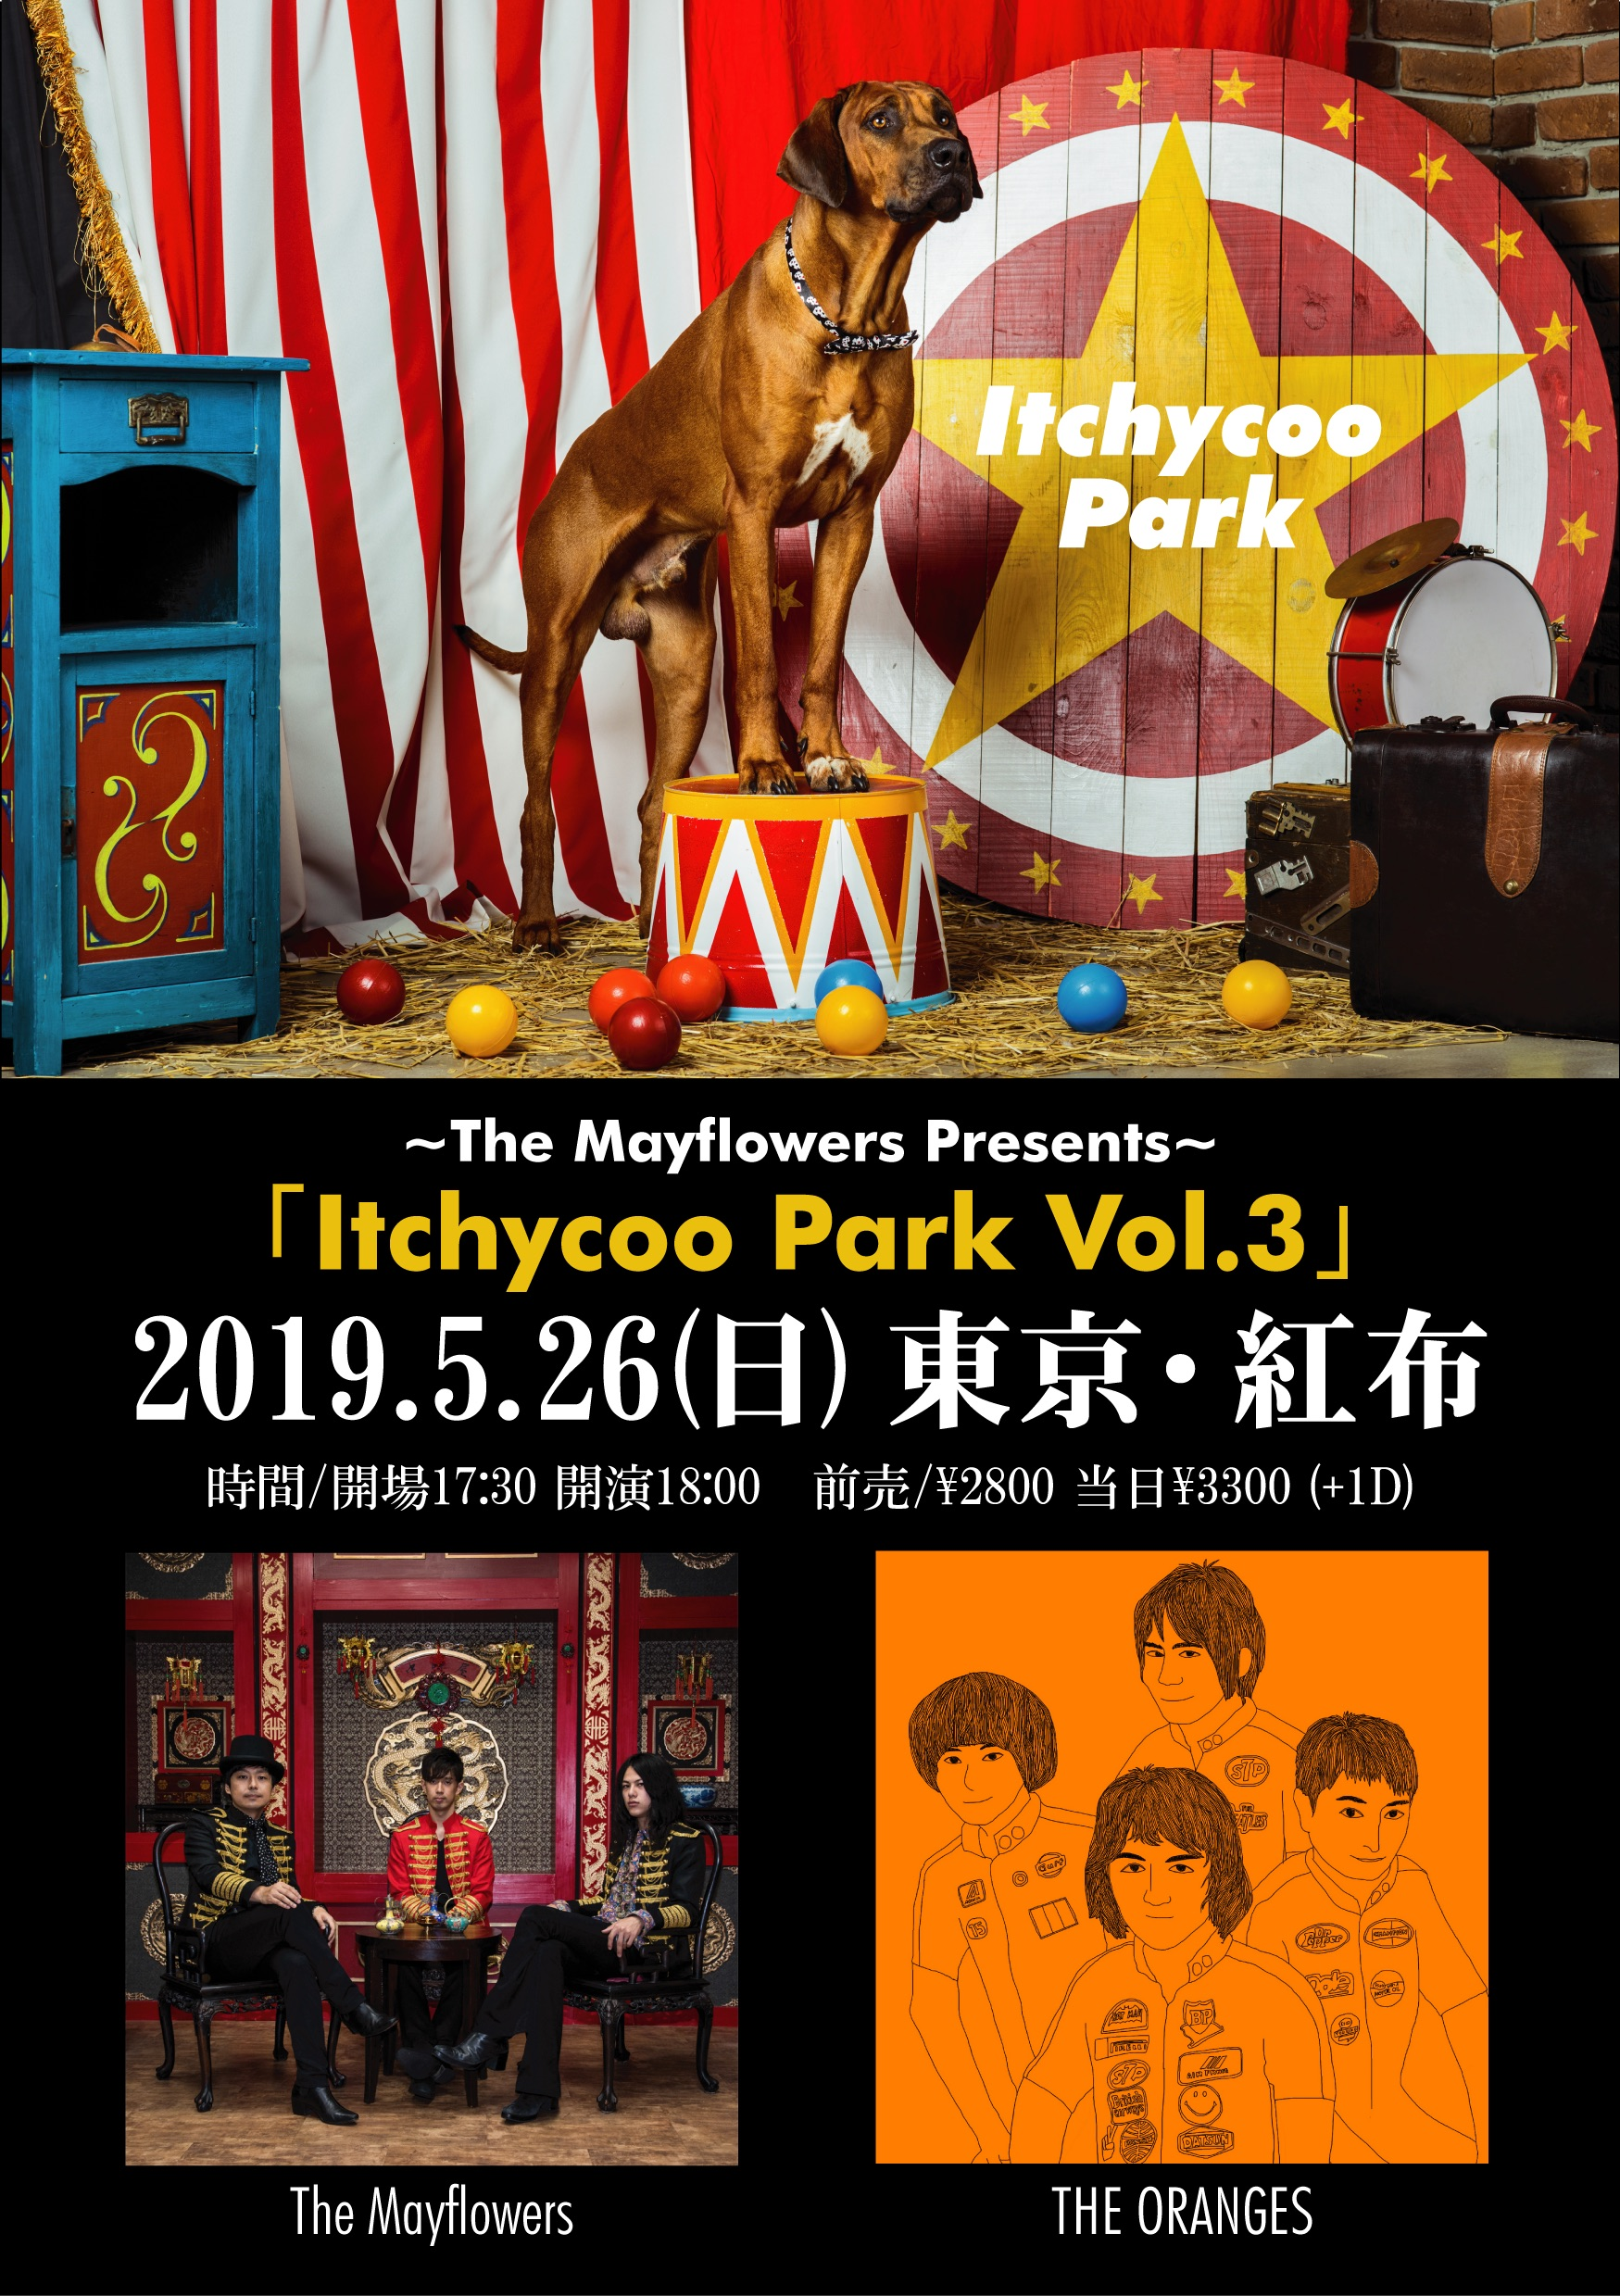 ~The Mayflowers Presents~「Itchycoo Park Vol.3」